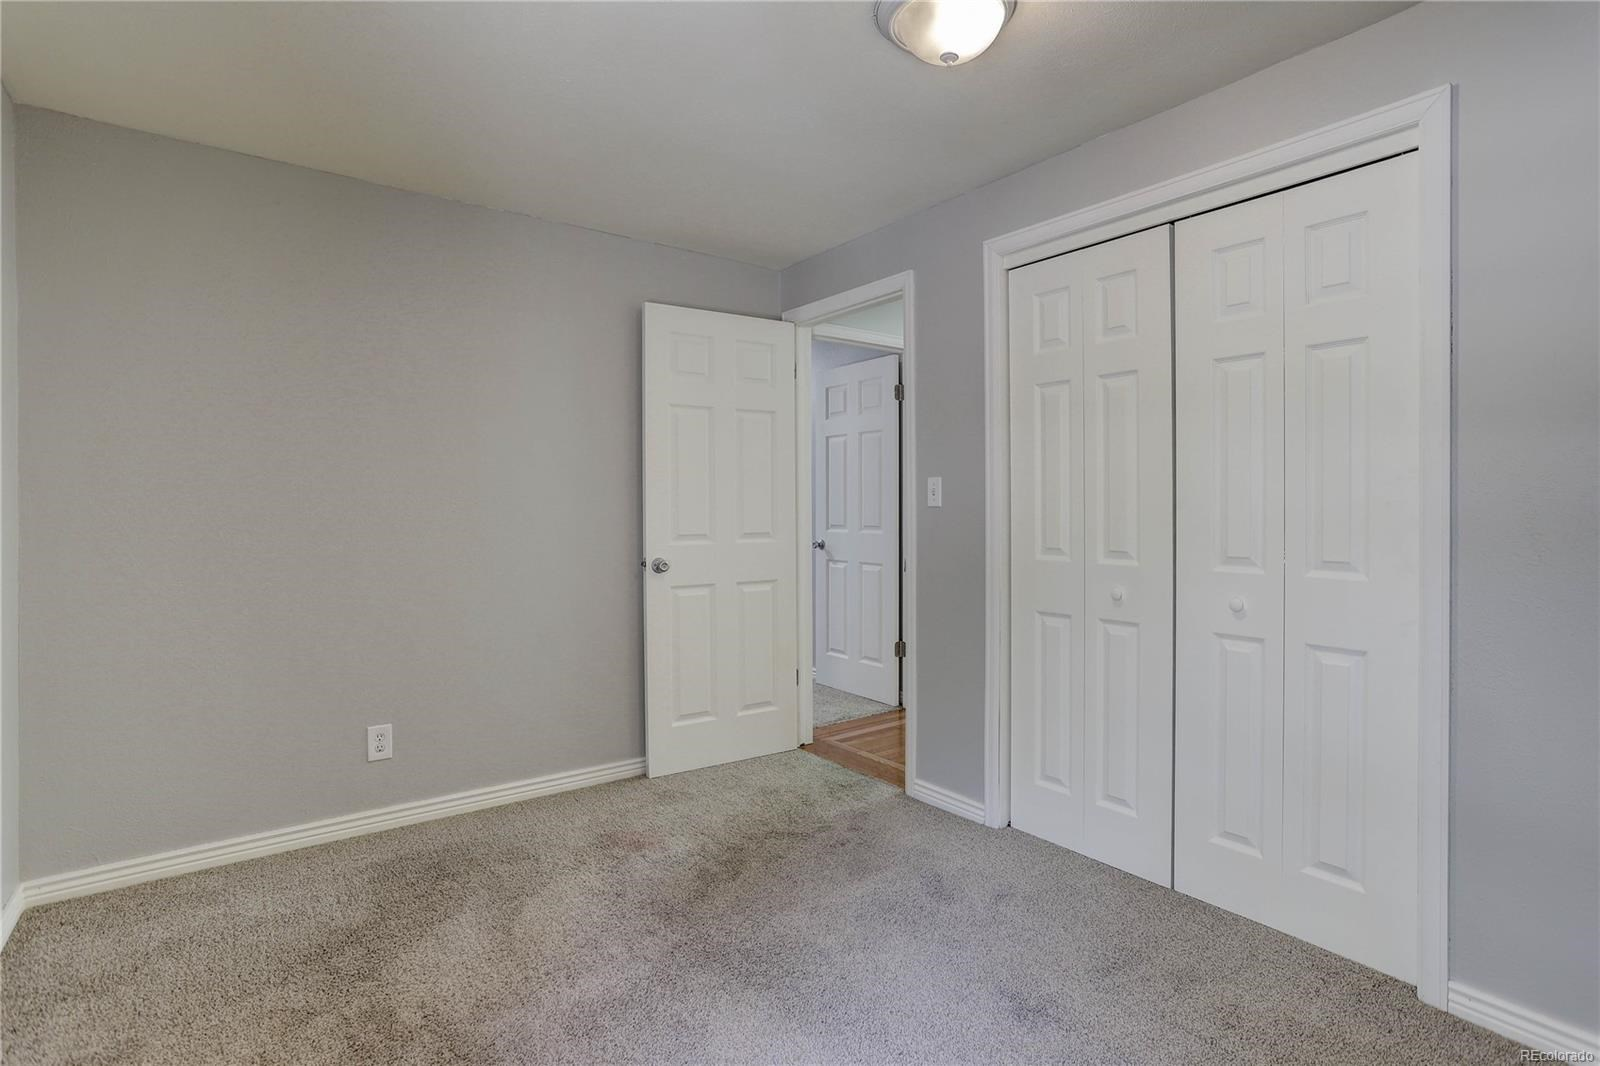 MLS# 2968148 - 21 - 2931 S Downing Street, Englewood, CO 80113